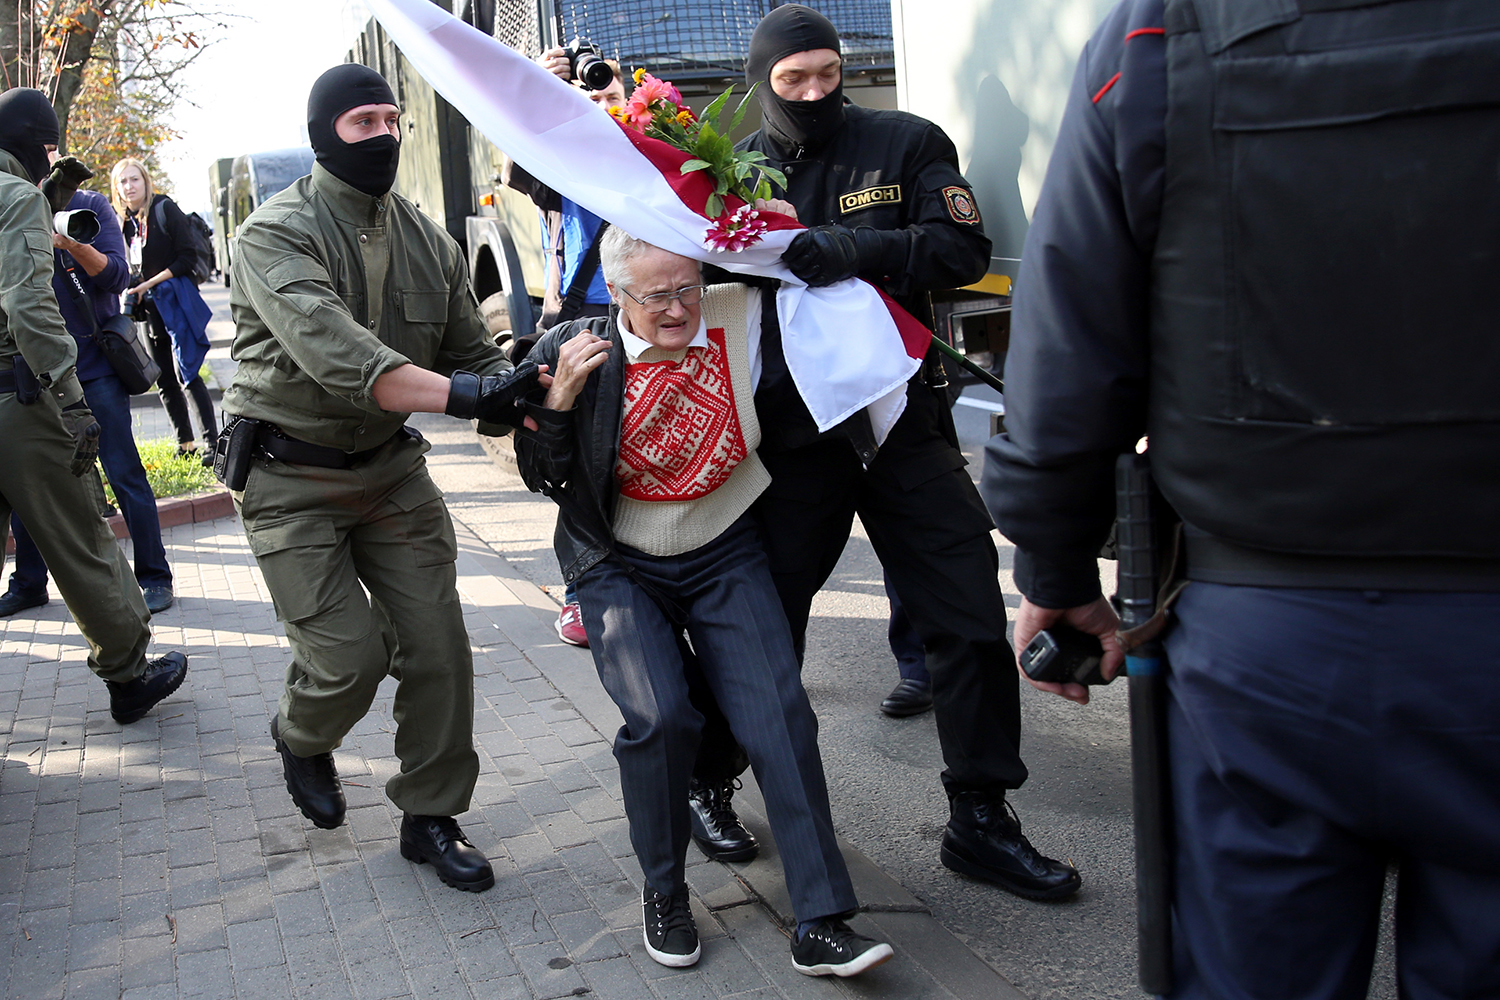 Law enforcement officers arrest and detain opposition activist Nina Baginskaya, 73, during a rally to protest against the presidential election results in Minsk, Belarus, on Sept. 19. TUT.BY/AFP via Getty Images